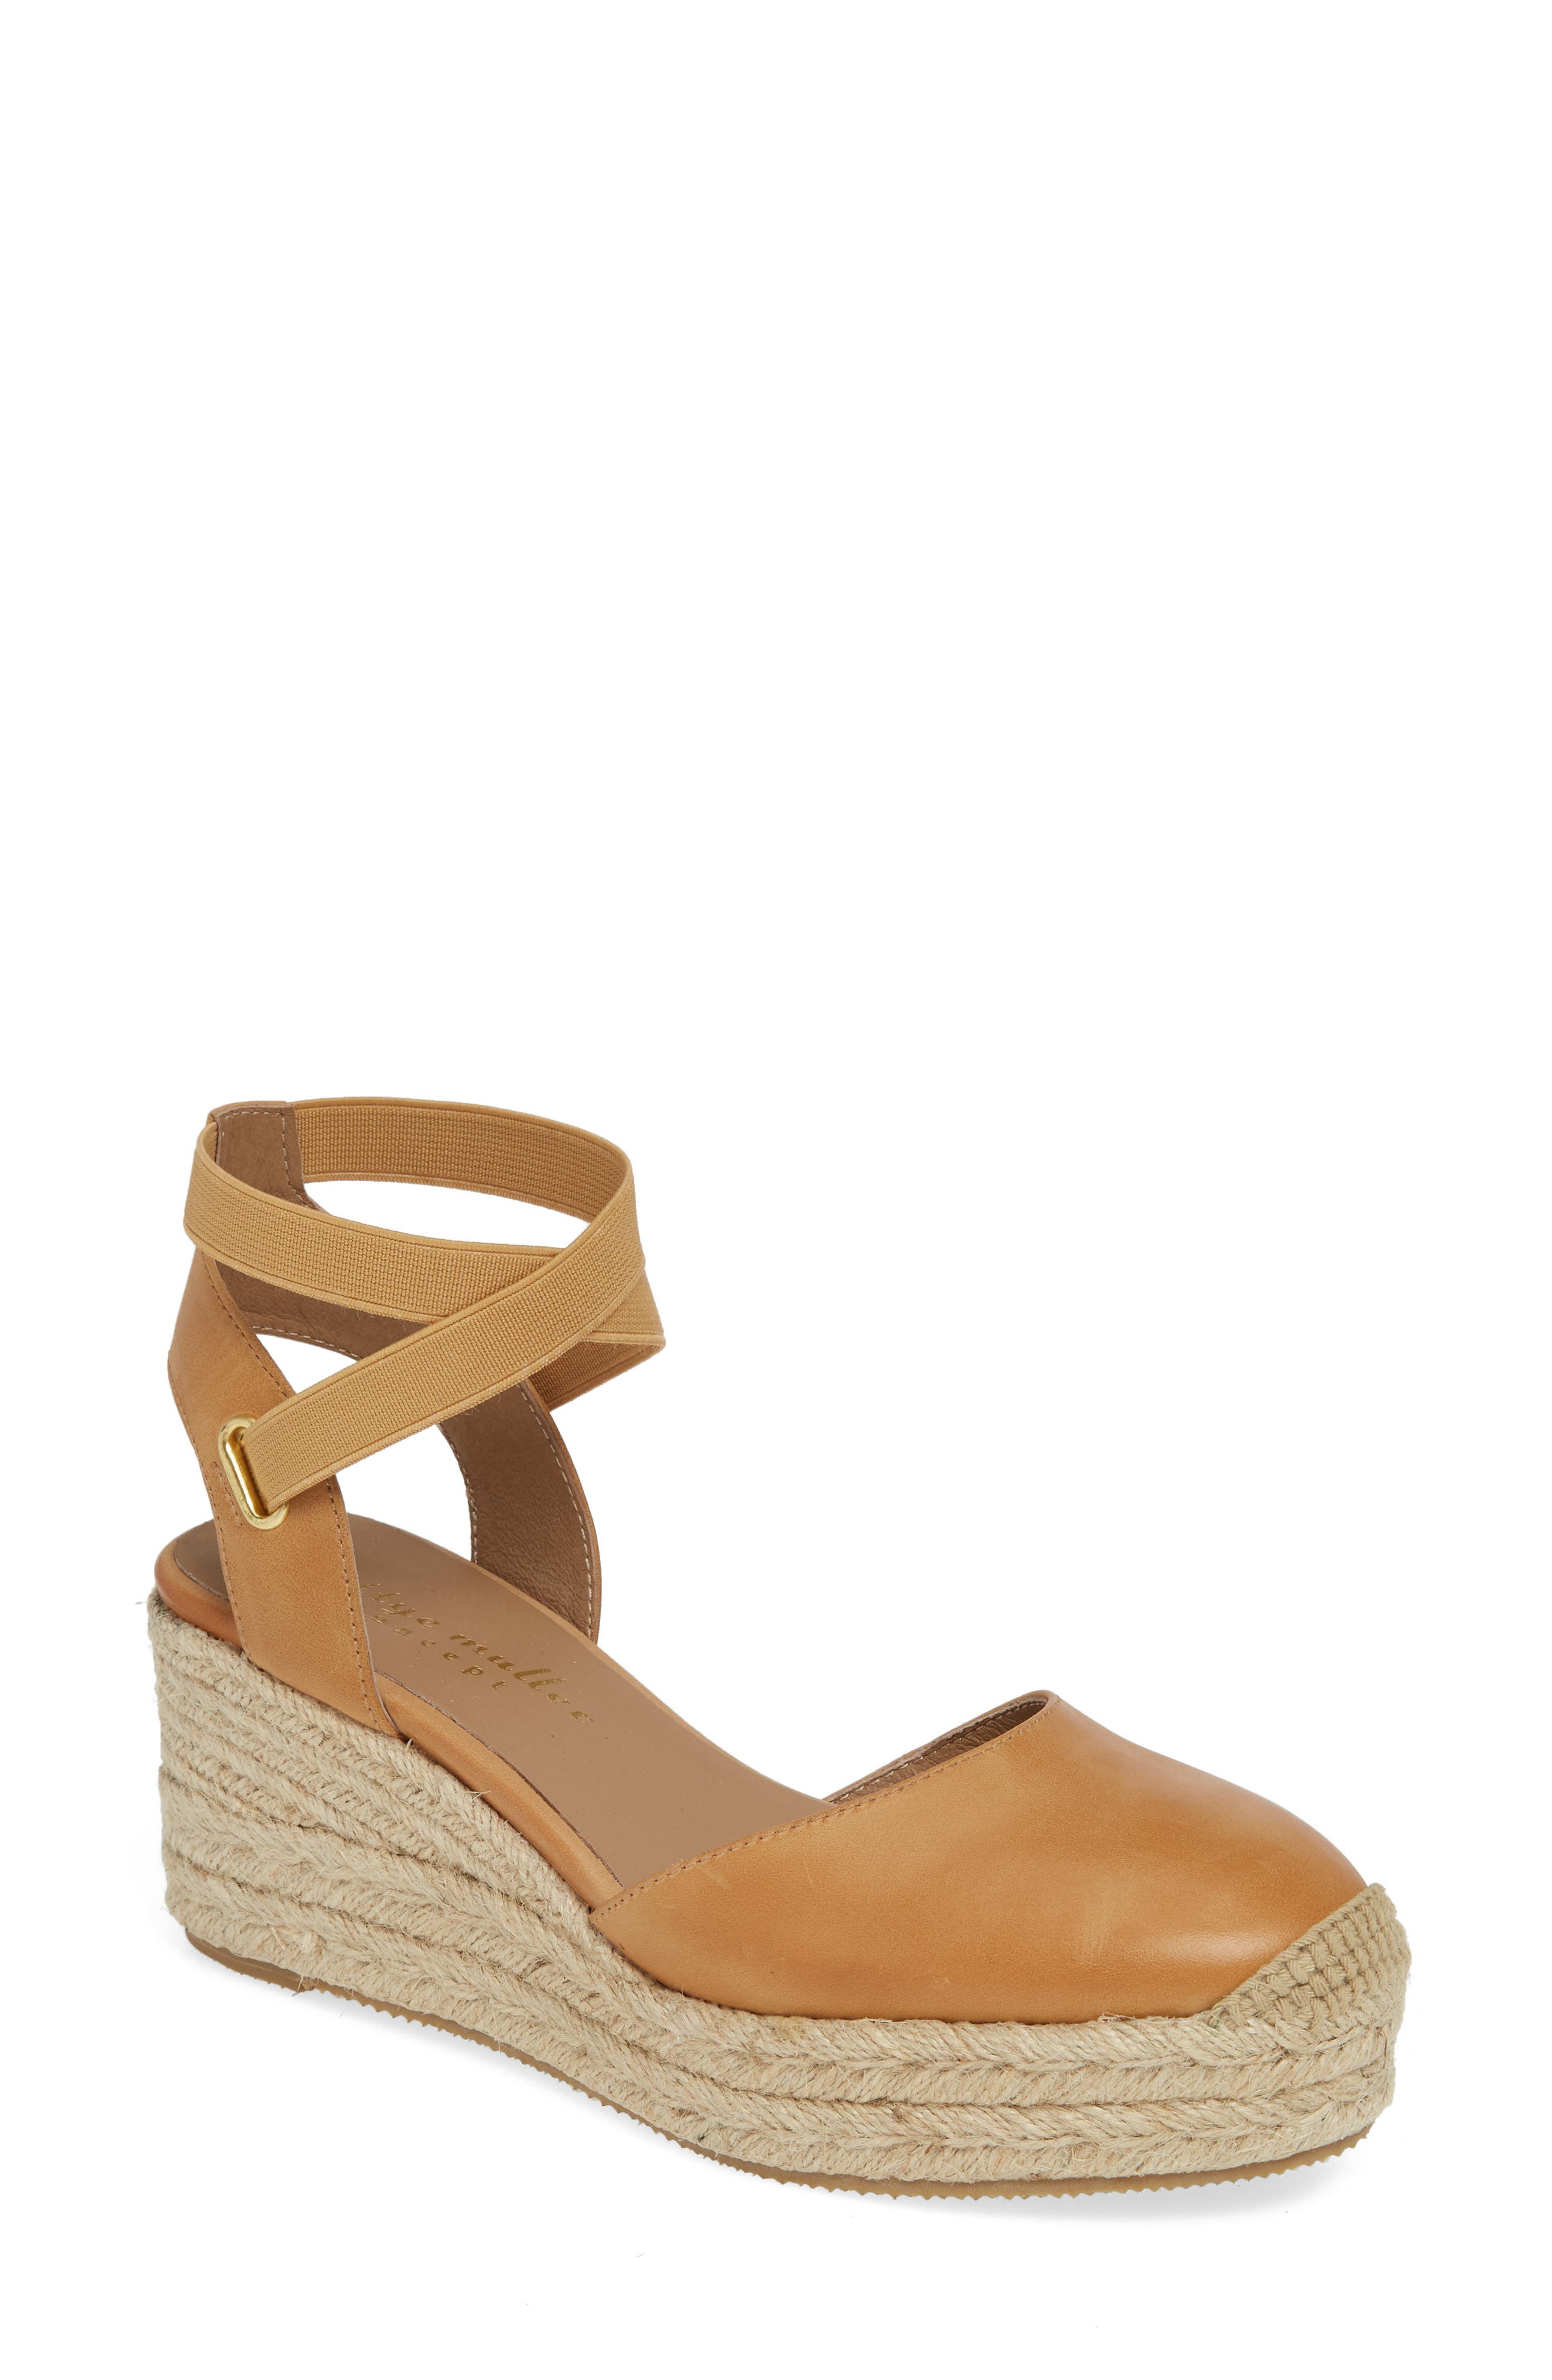 Bettye Muller Concepts Reba Espadrille Wedge, Beige